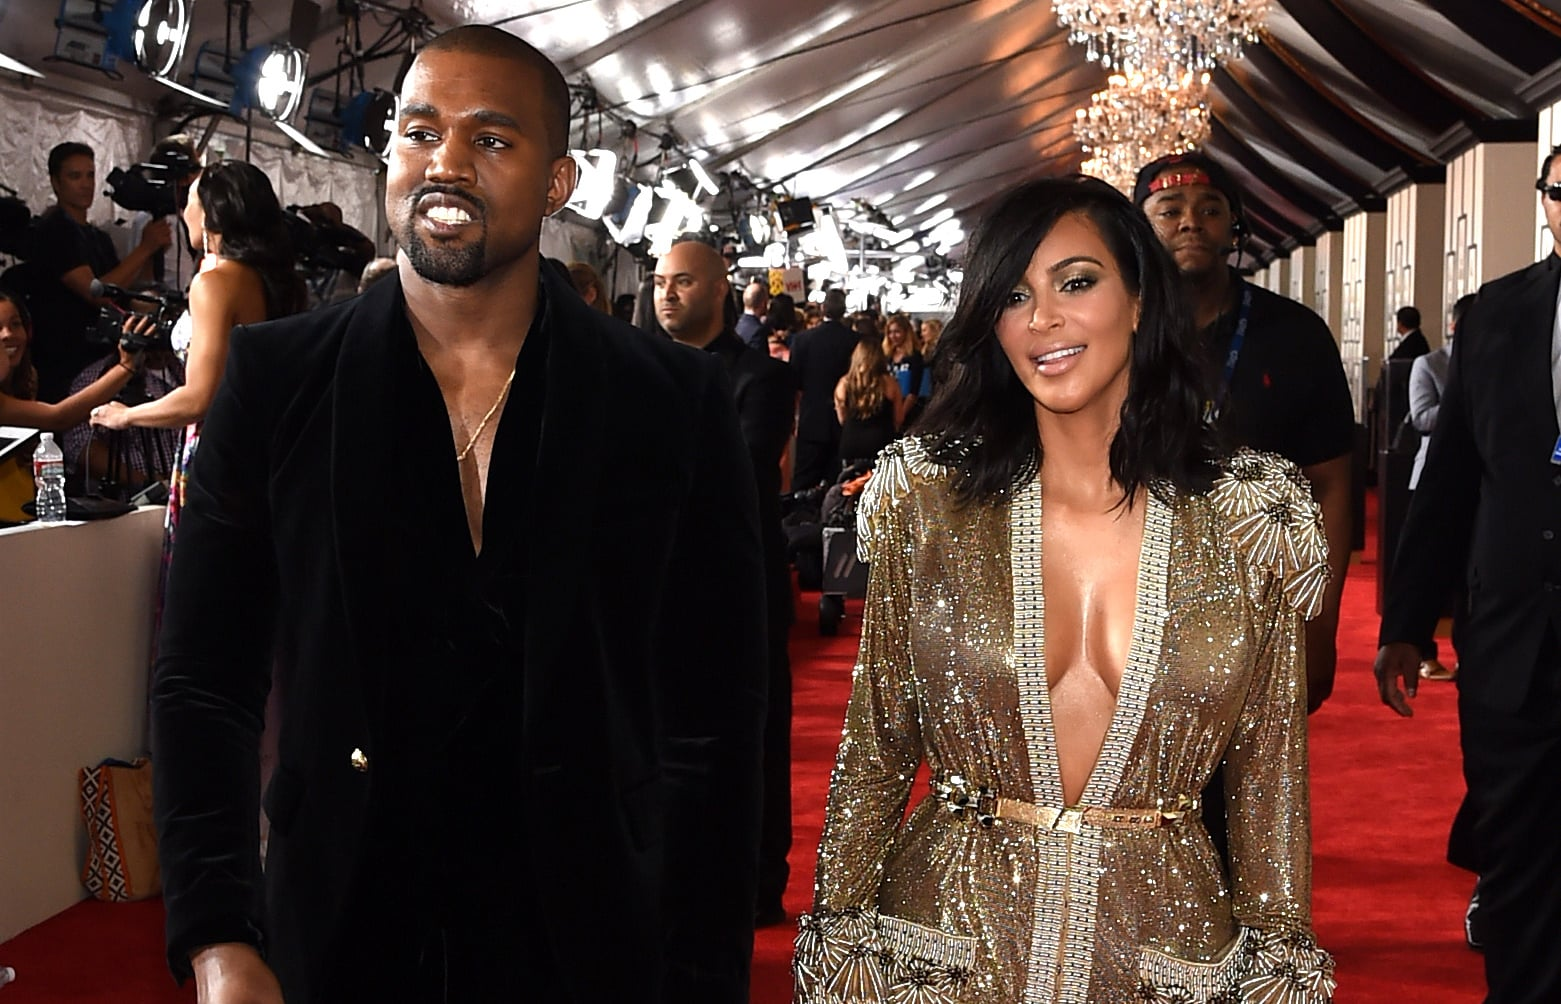 The Special Reason Kim Kardashian and Kanye West Likely Named Their Daughter Chicago